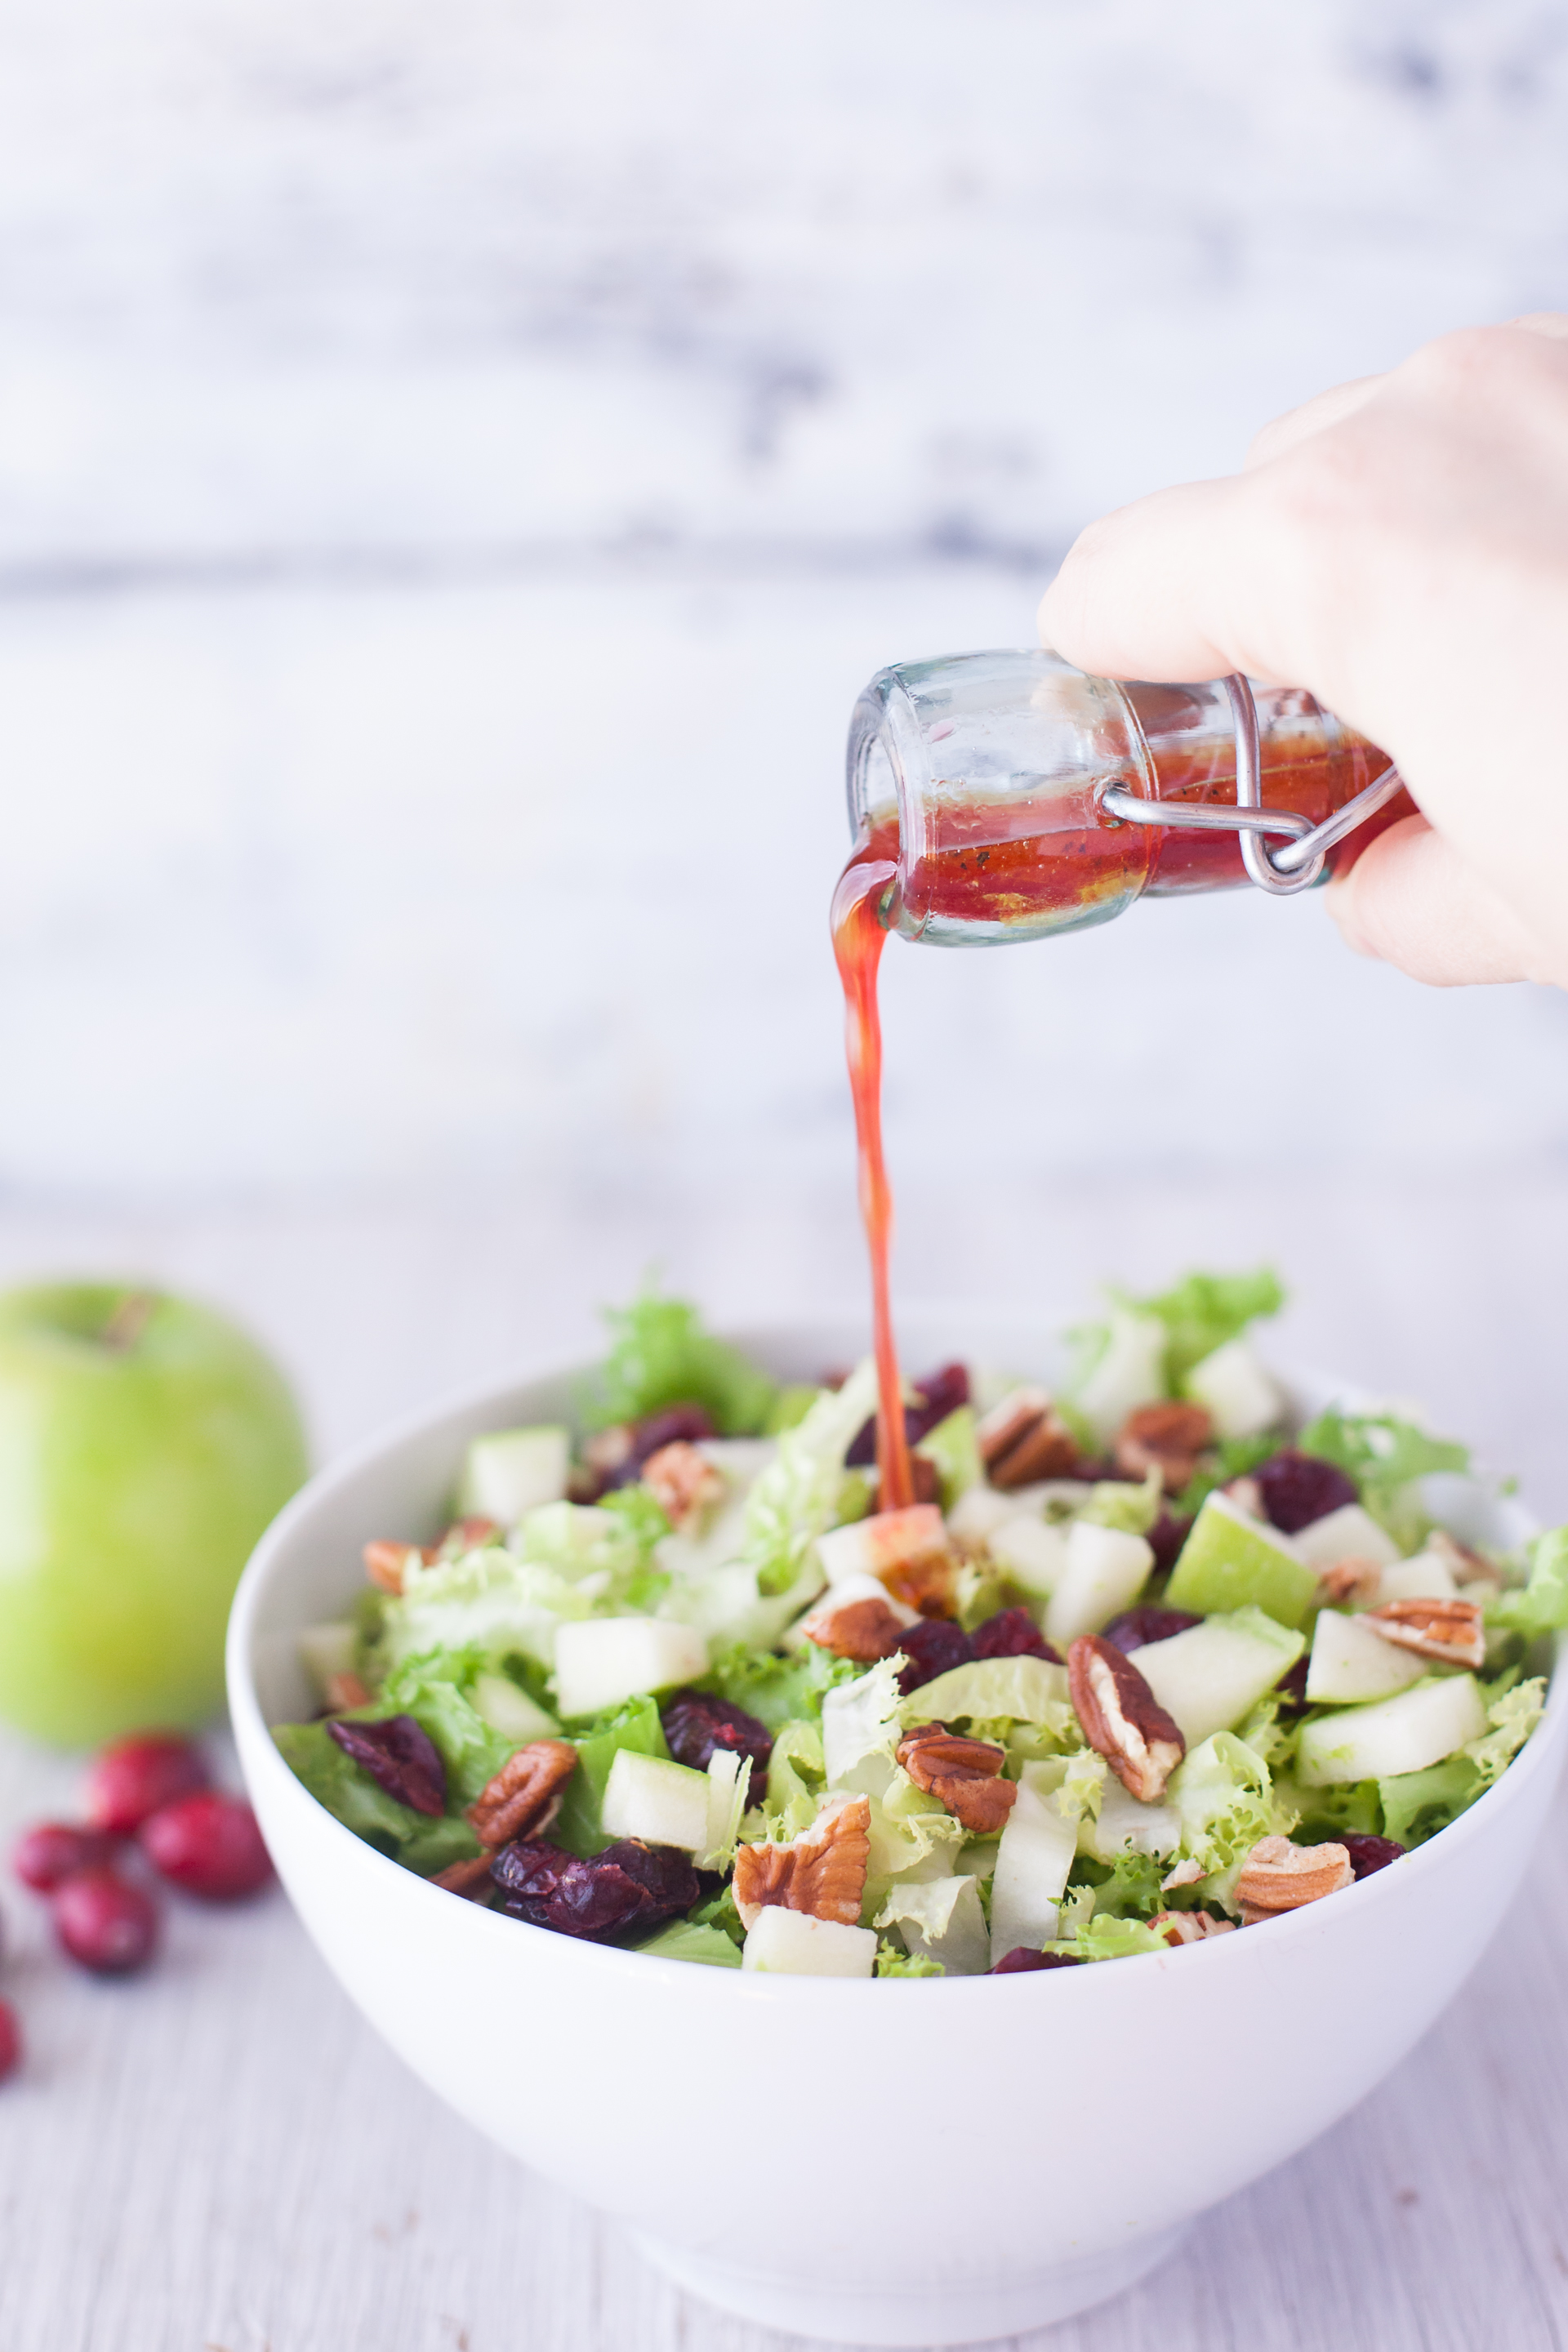 Apple Cranberry Salad Recipe and What is Endive?